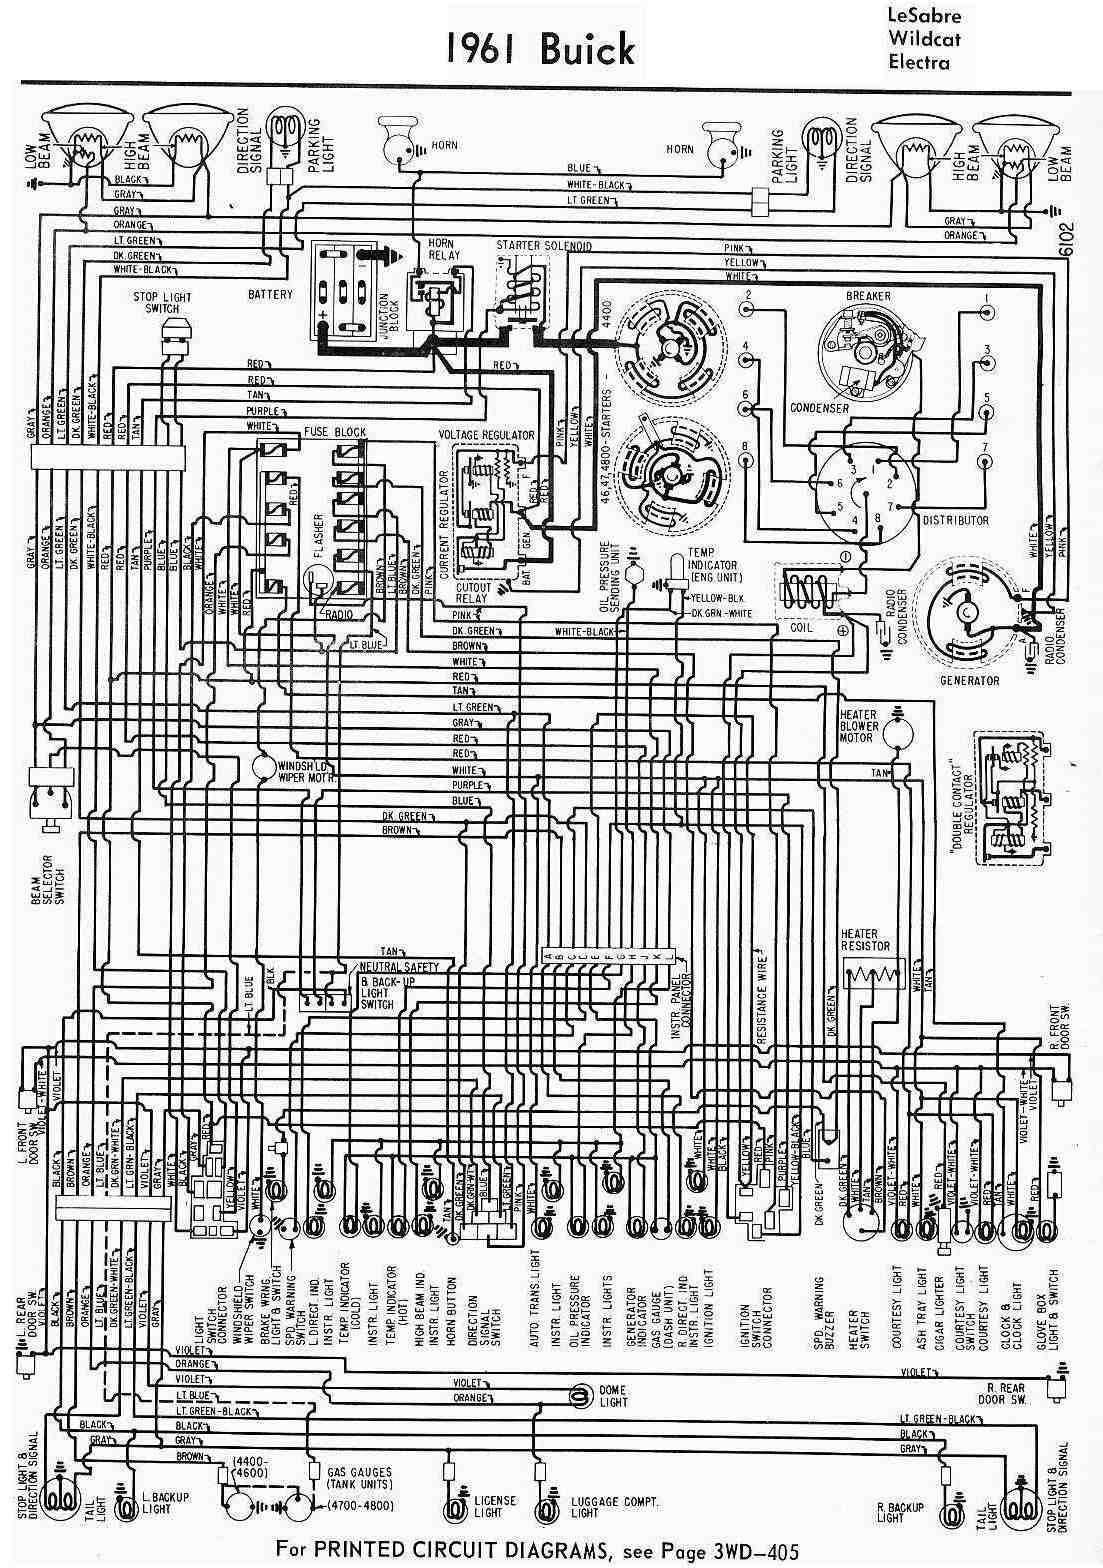 december 2011 all about wiring diagrams 2003 chevy s10 fuse diagram 2003 s10 fuse diagram #3